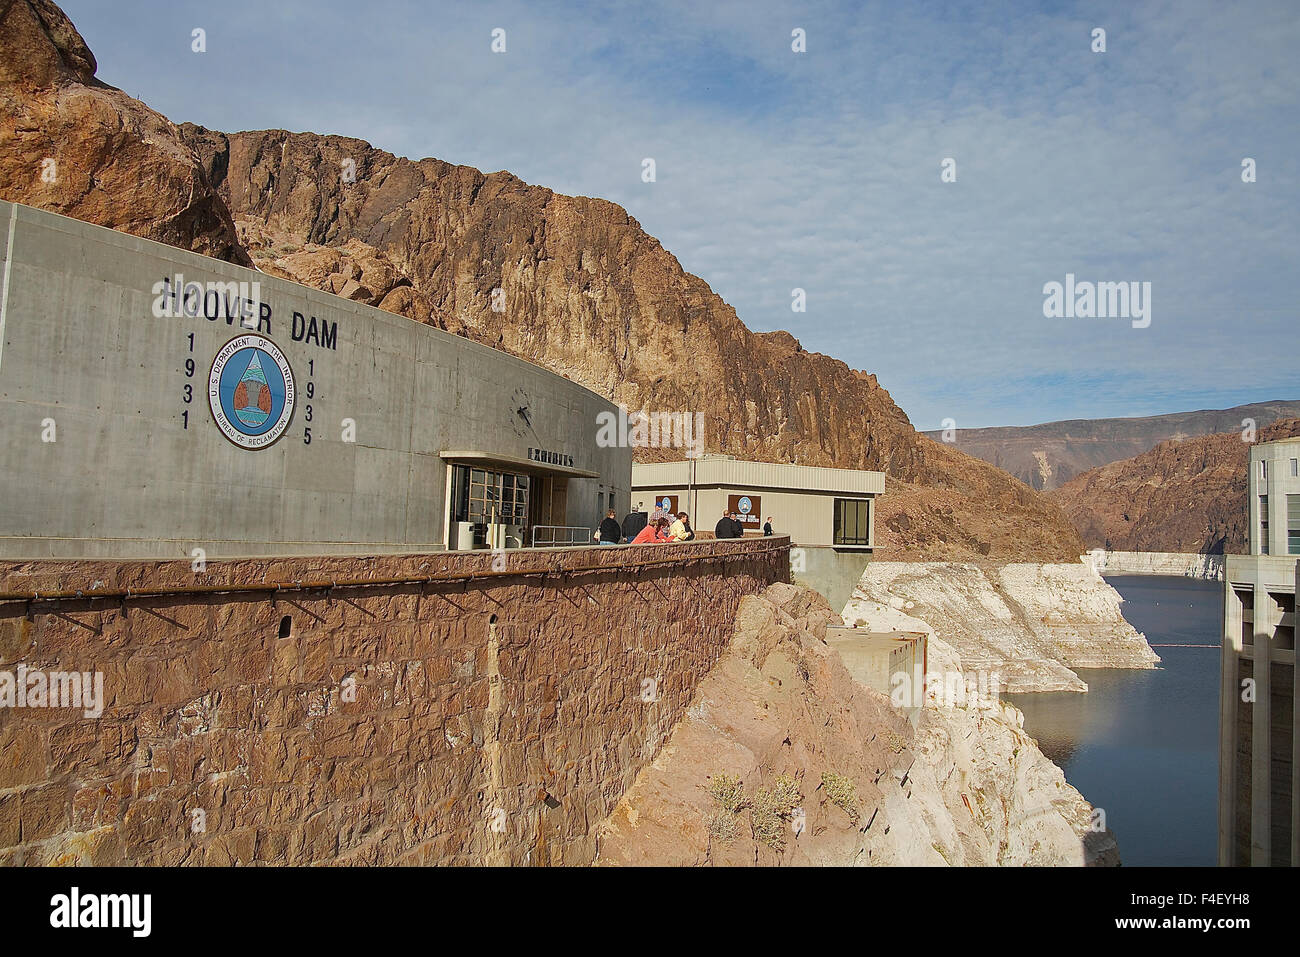 Visitors outside an exhibit hall at the Hoover Dam view the man-made and natural beauty. Nevada, United States, - Stock Image